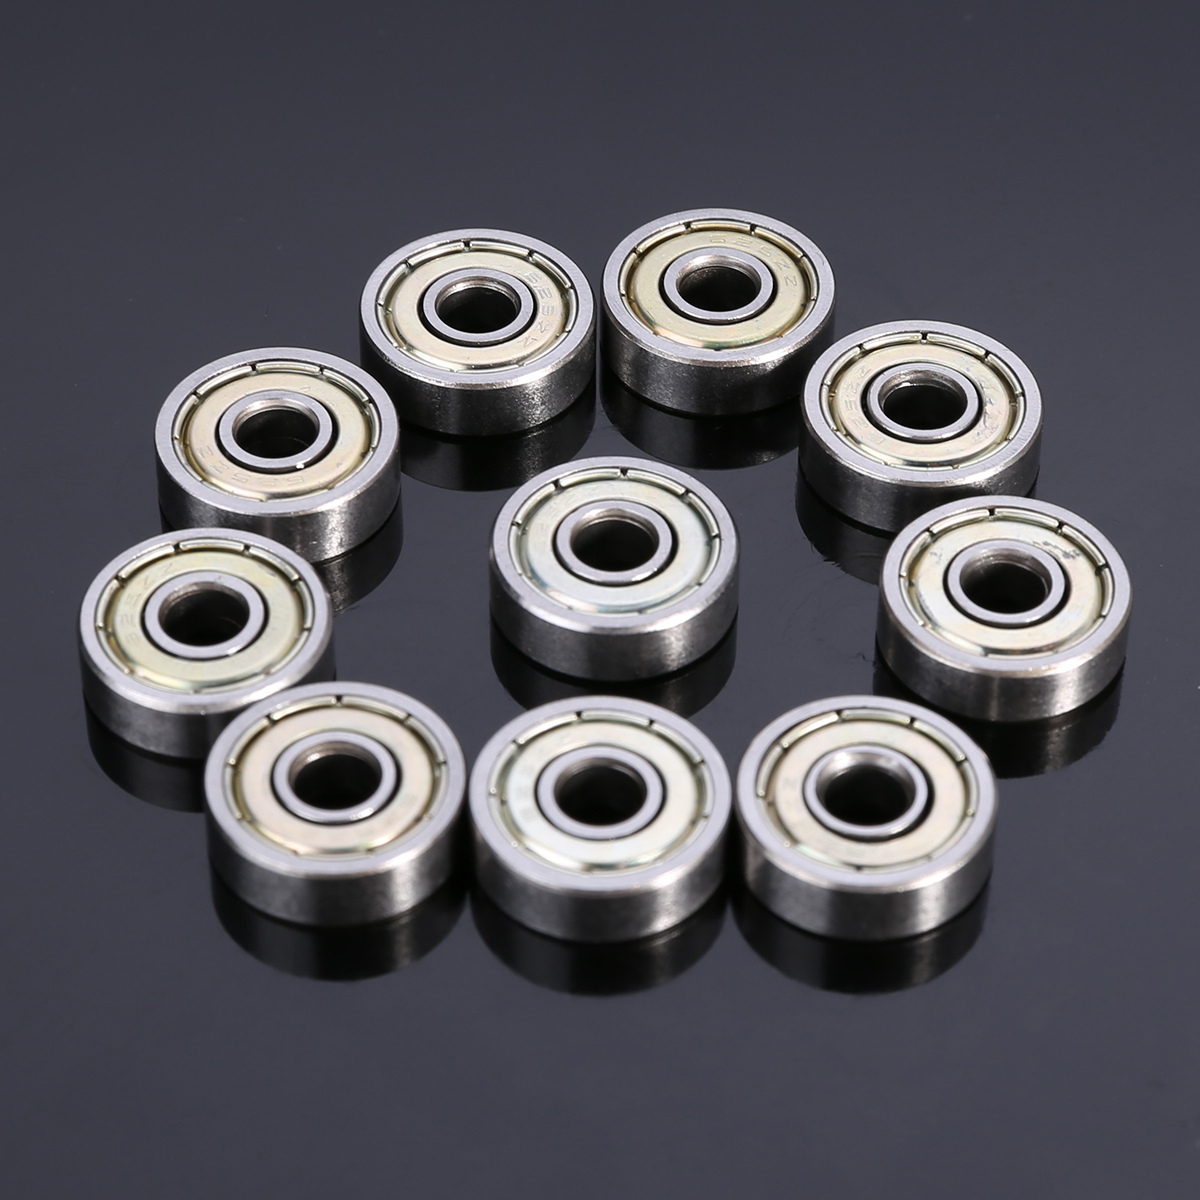 10pcs New Small Wear 625ZZ Ball Bearings Mayitr Carbon Steel Single Row Miniature Deep Groove Radial Ball Bearing 5*16*5mm pp bedtime for baby dwf acct